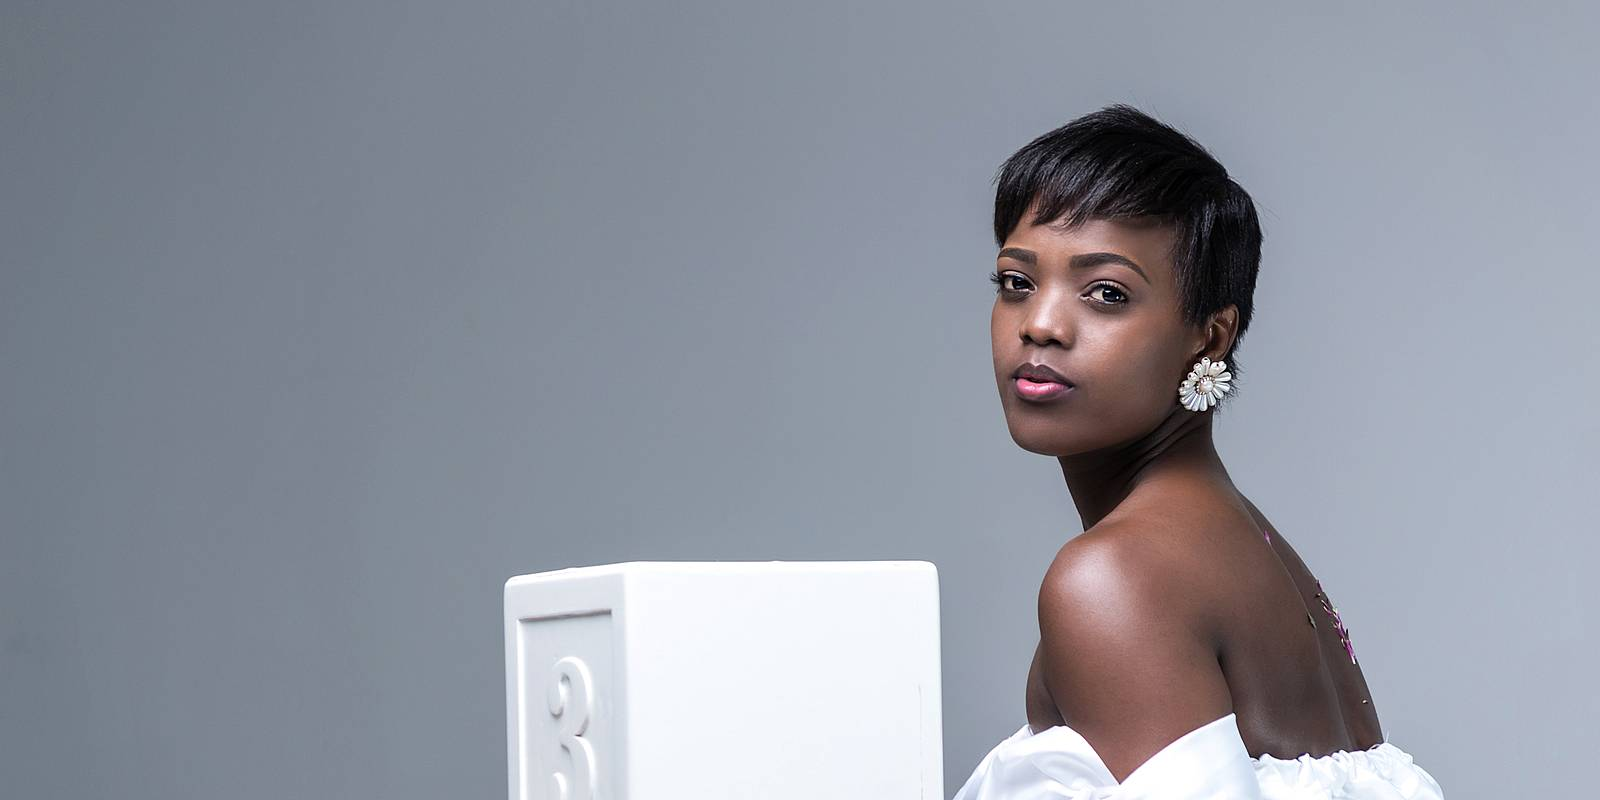 African Woman in white dress in sitting